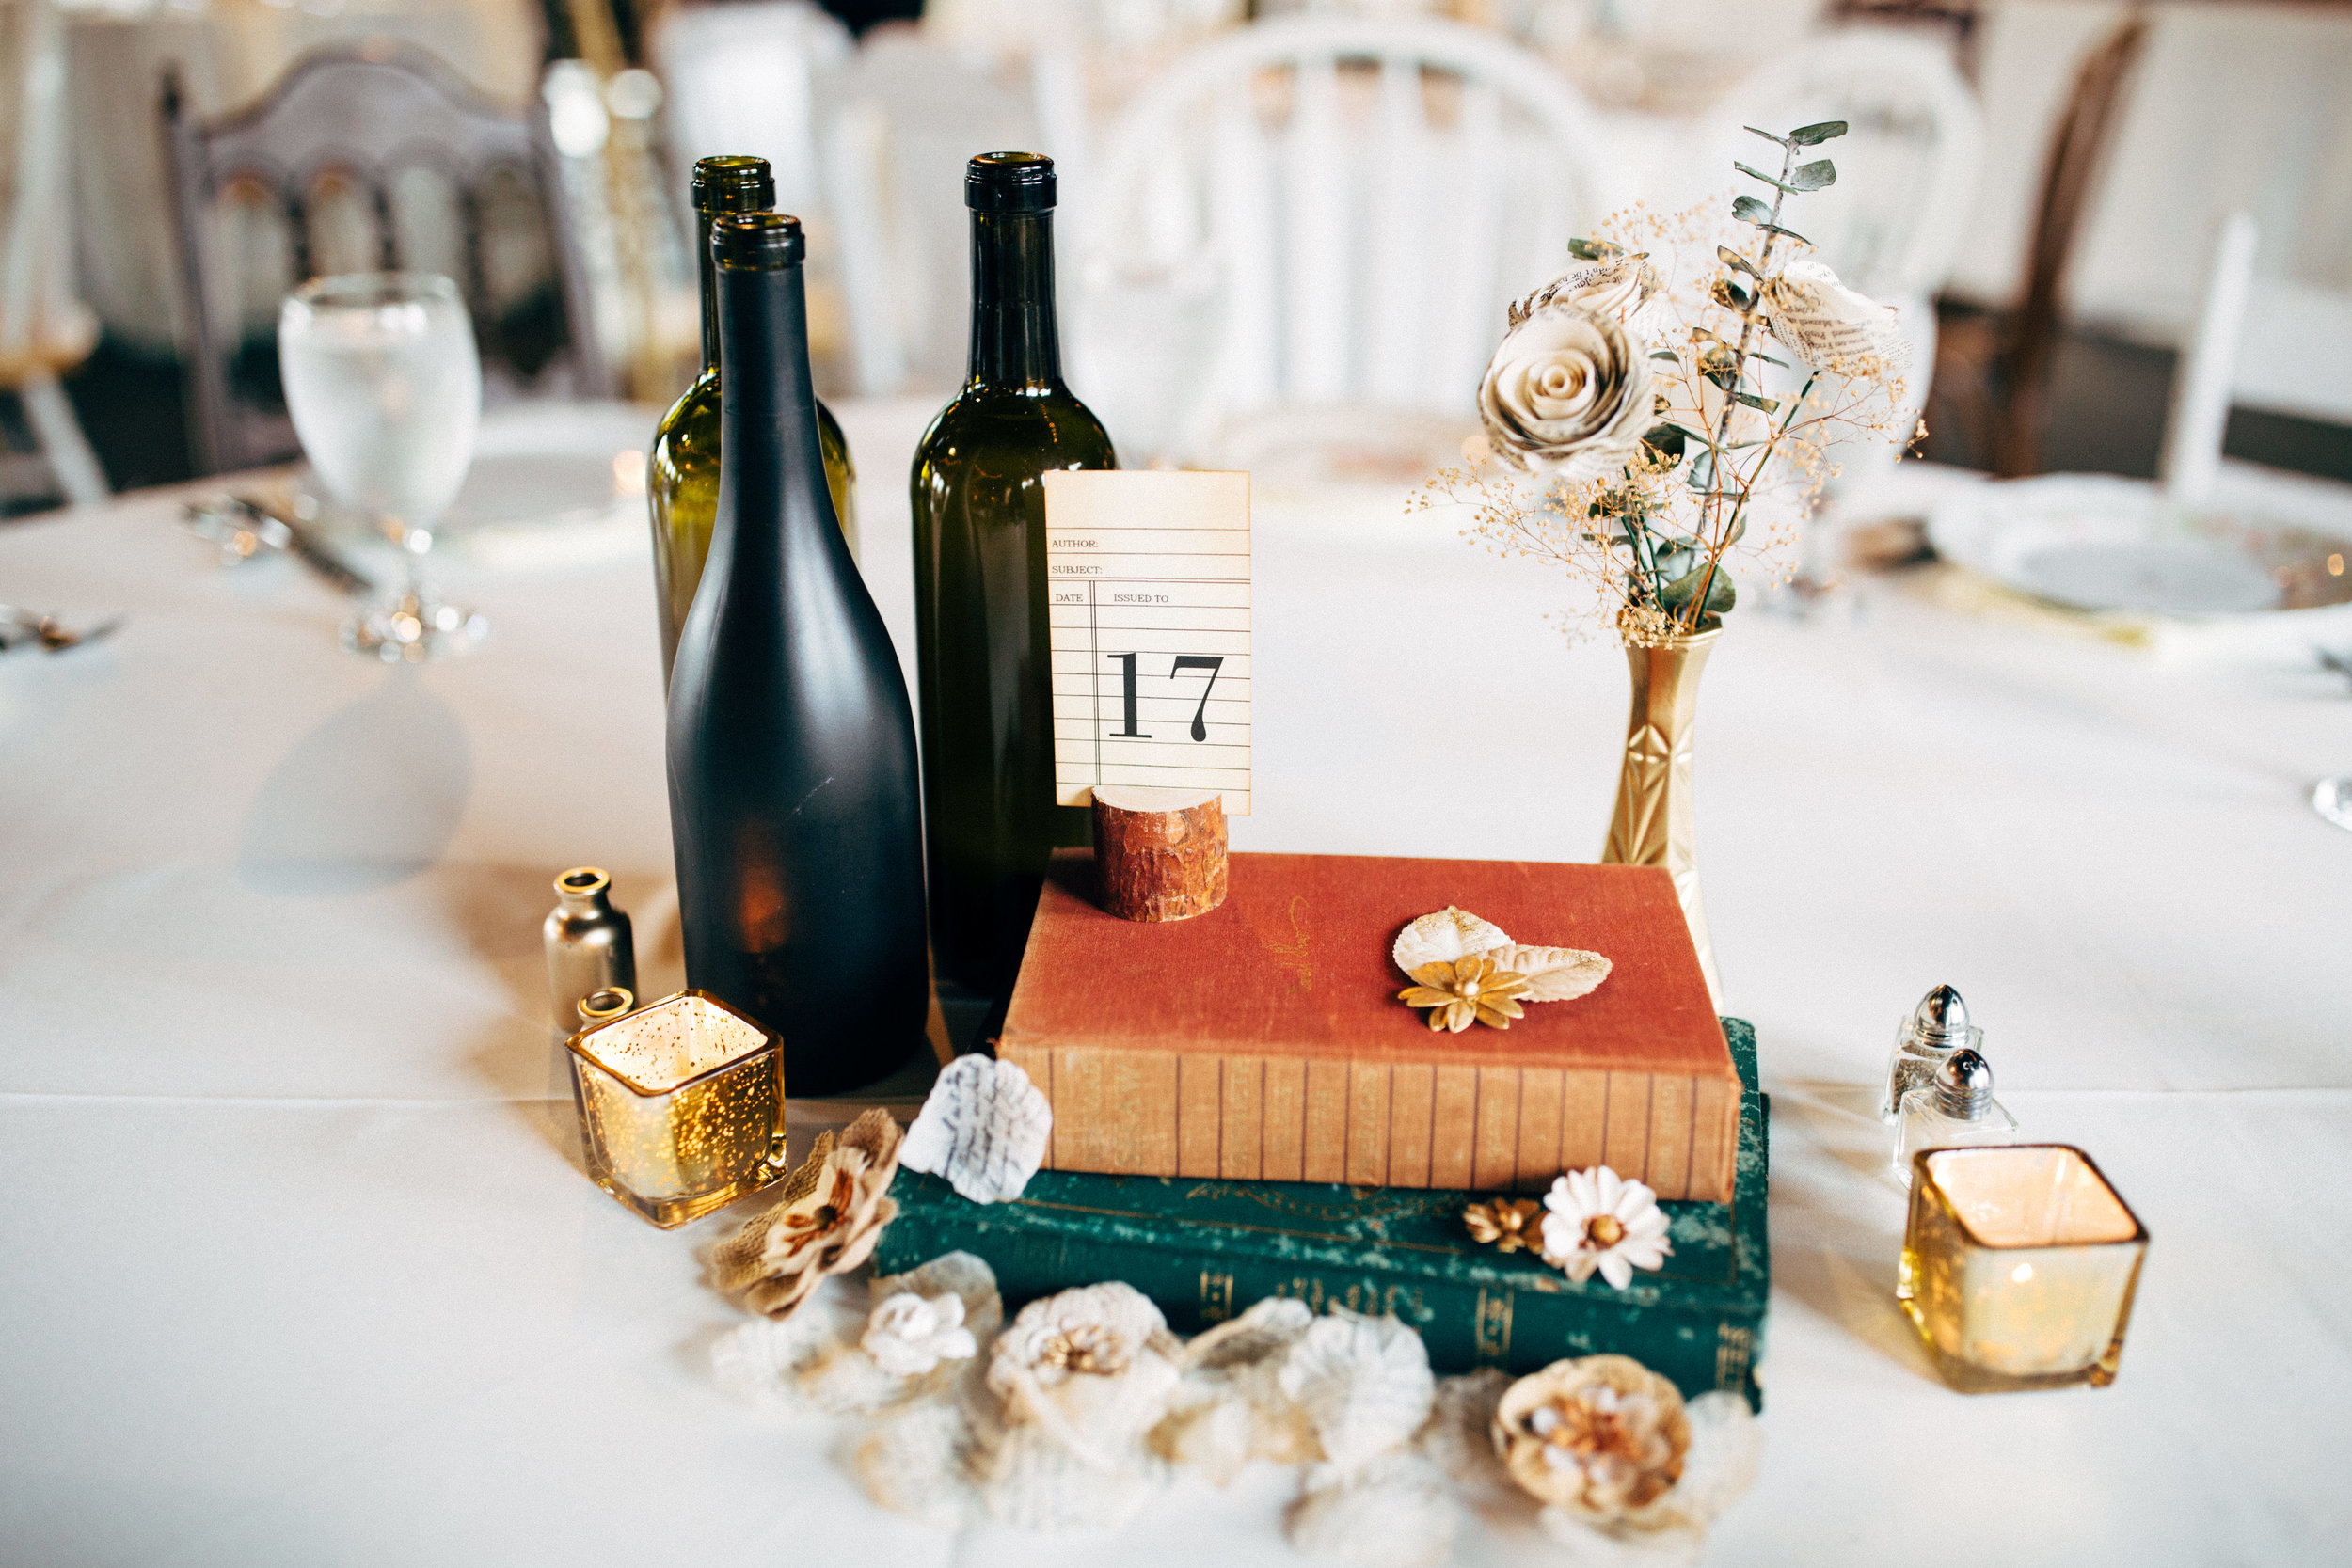 tables at wedding reception decorated with wine bottles, flowers, books, and table number library card